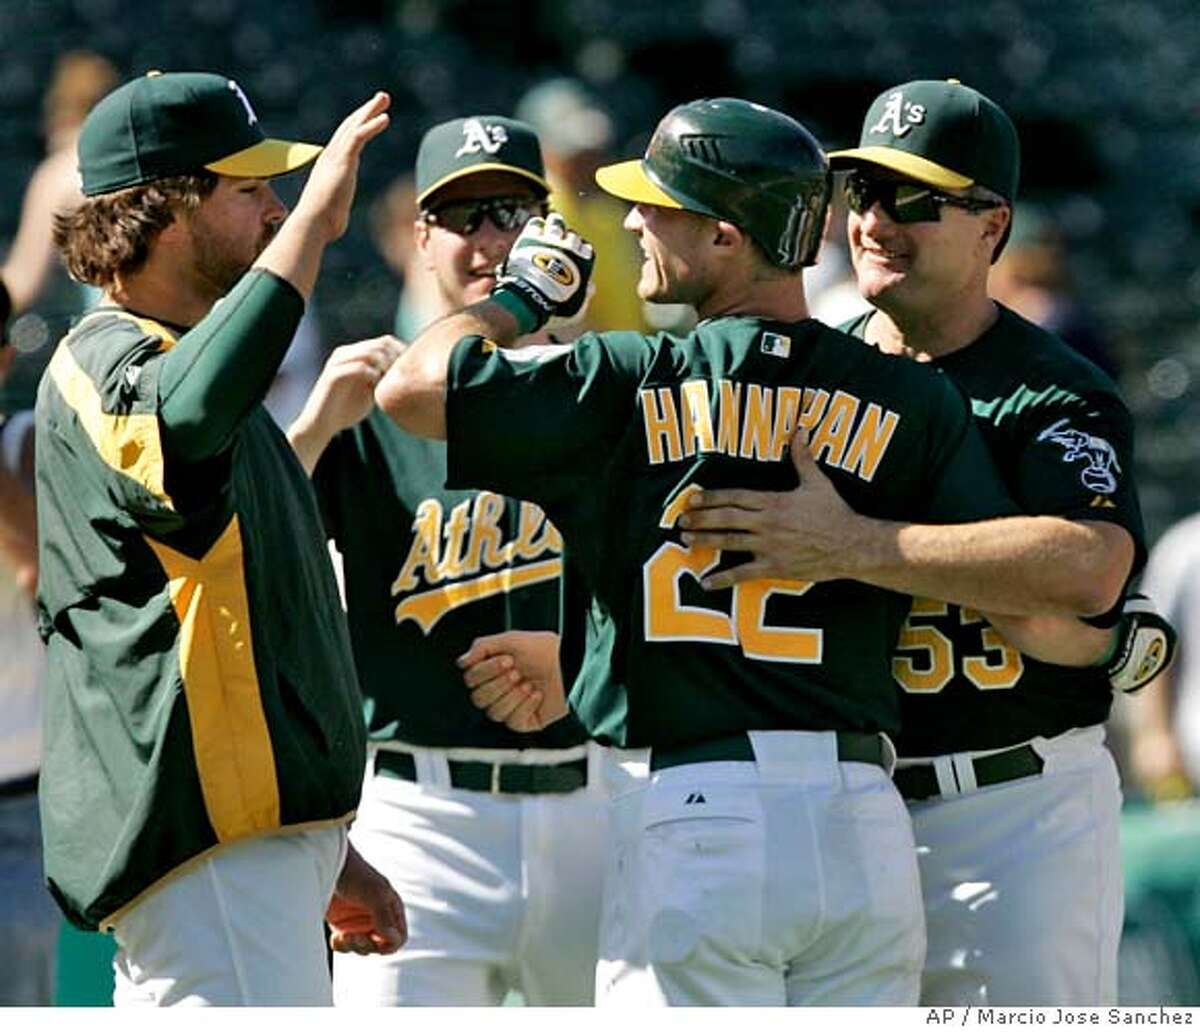 Oakland Athletics' Jack Hannahan, center right, is congratulated by manager Bob Geren, right, and Mike Piazza, left, after driving in the game-winning run with a single off Toronto Blue Jays pitcher Scott Downs in the 11th inning of a baseball game in Oakland, Calif., Wednesday, Aug. 29, 2007. Oakland won 5-4. The other person is not identified. (AP Photo/Marcio Jose Sanchez) EFE OUT